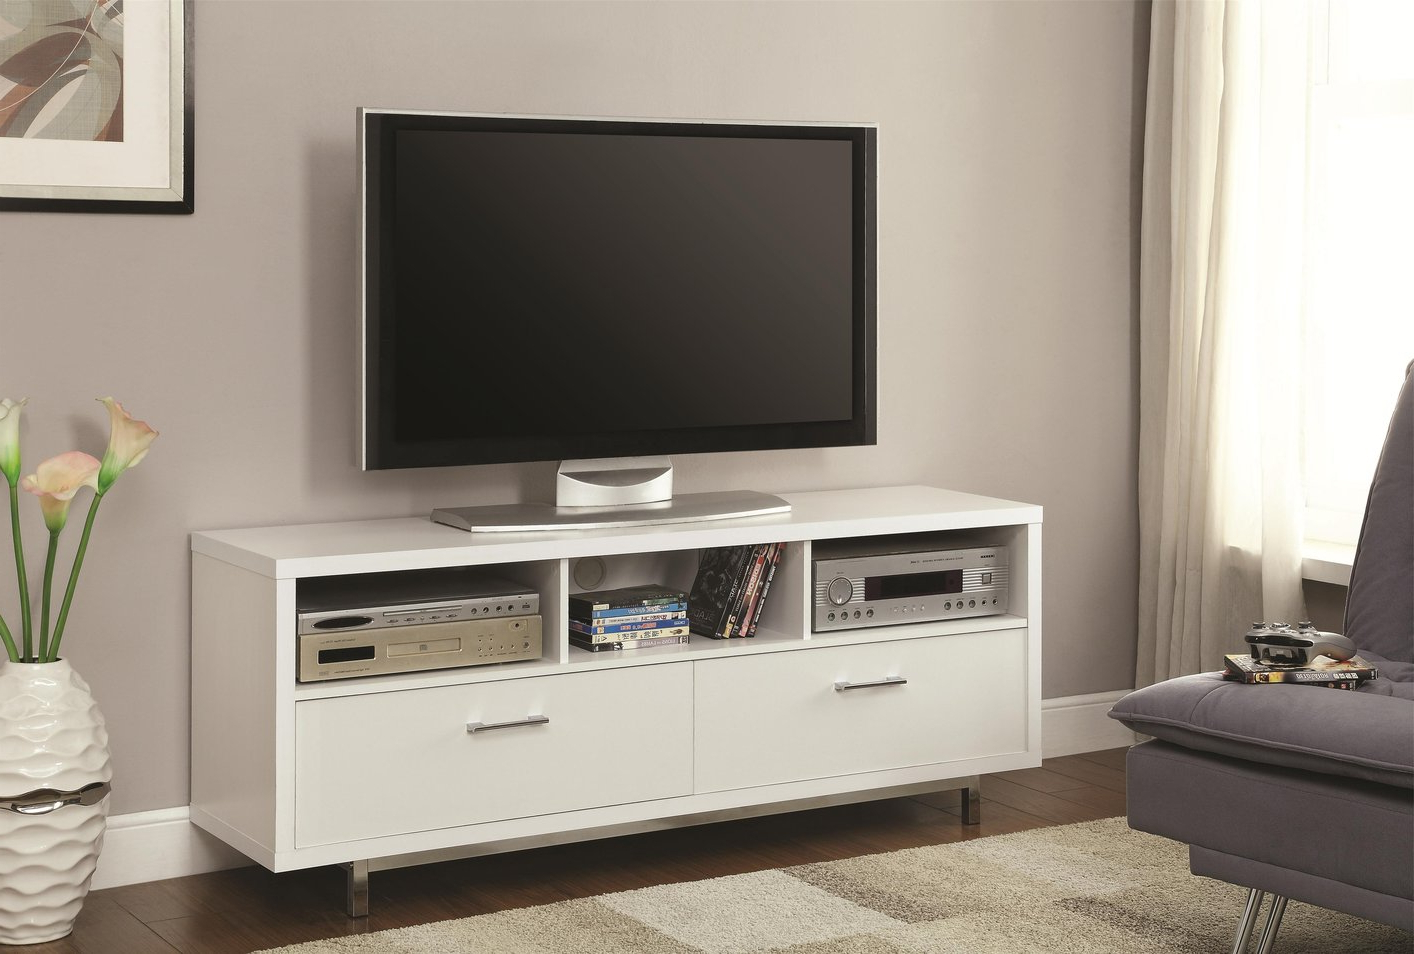 White Wood Tv Stand – Steal A Sofa Furniture Outlet Los Angeles Ca Regarding Well Known White Tv Stands (View 19 of 20)